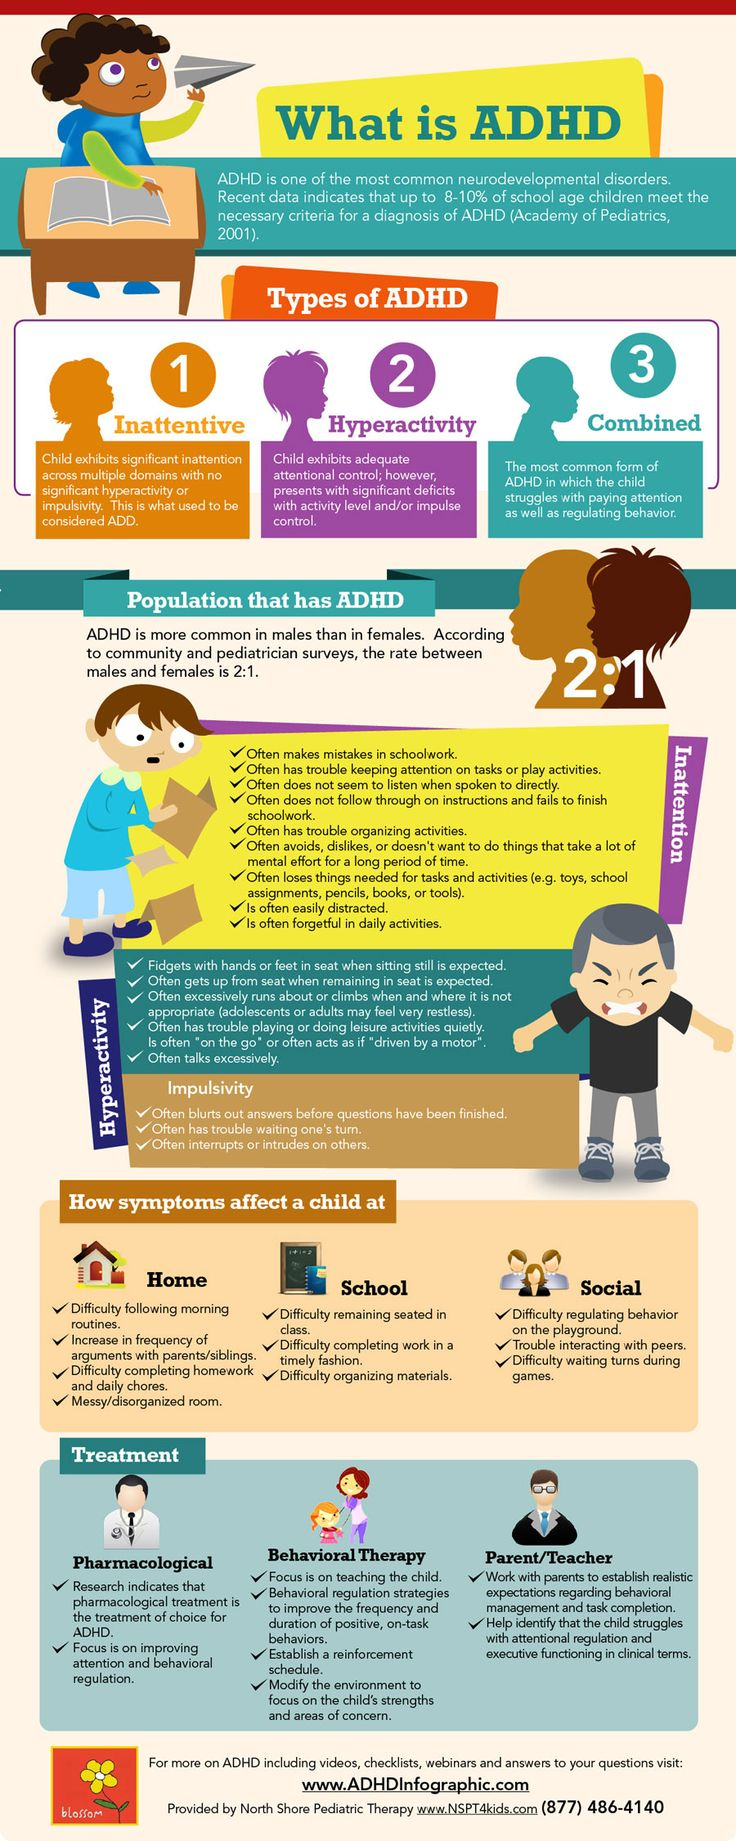 What is ADHD? Infographic. Perhaps if they put REAL P.E. back in school & better break times for the younger kids there would be less kids with ADHD or at least less symptoms. Tire those kids out!!